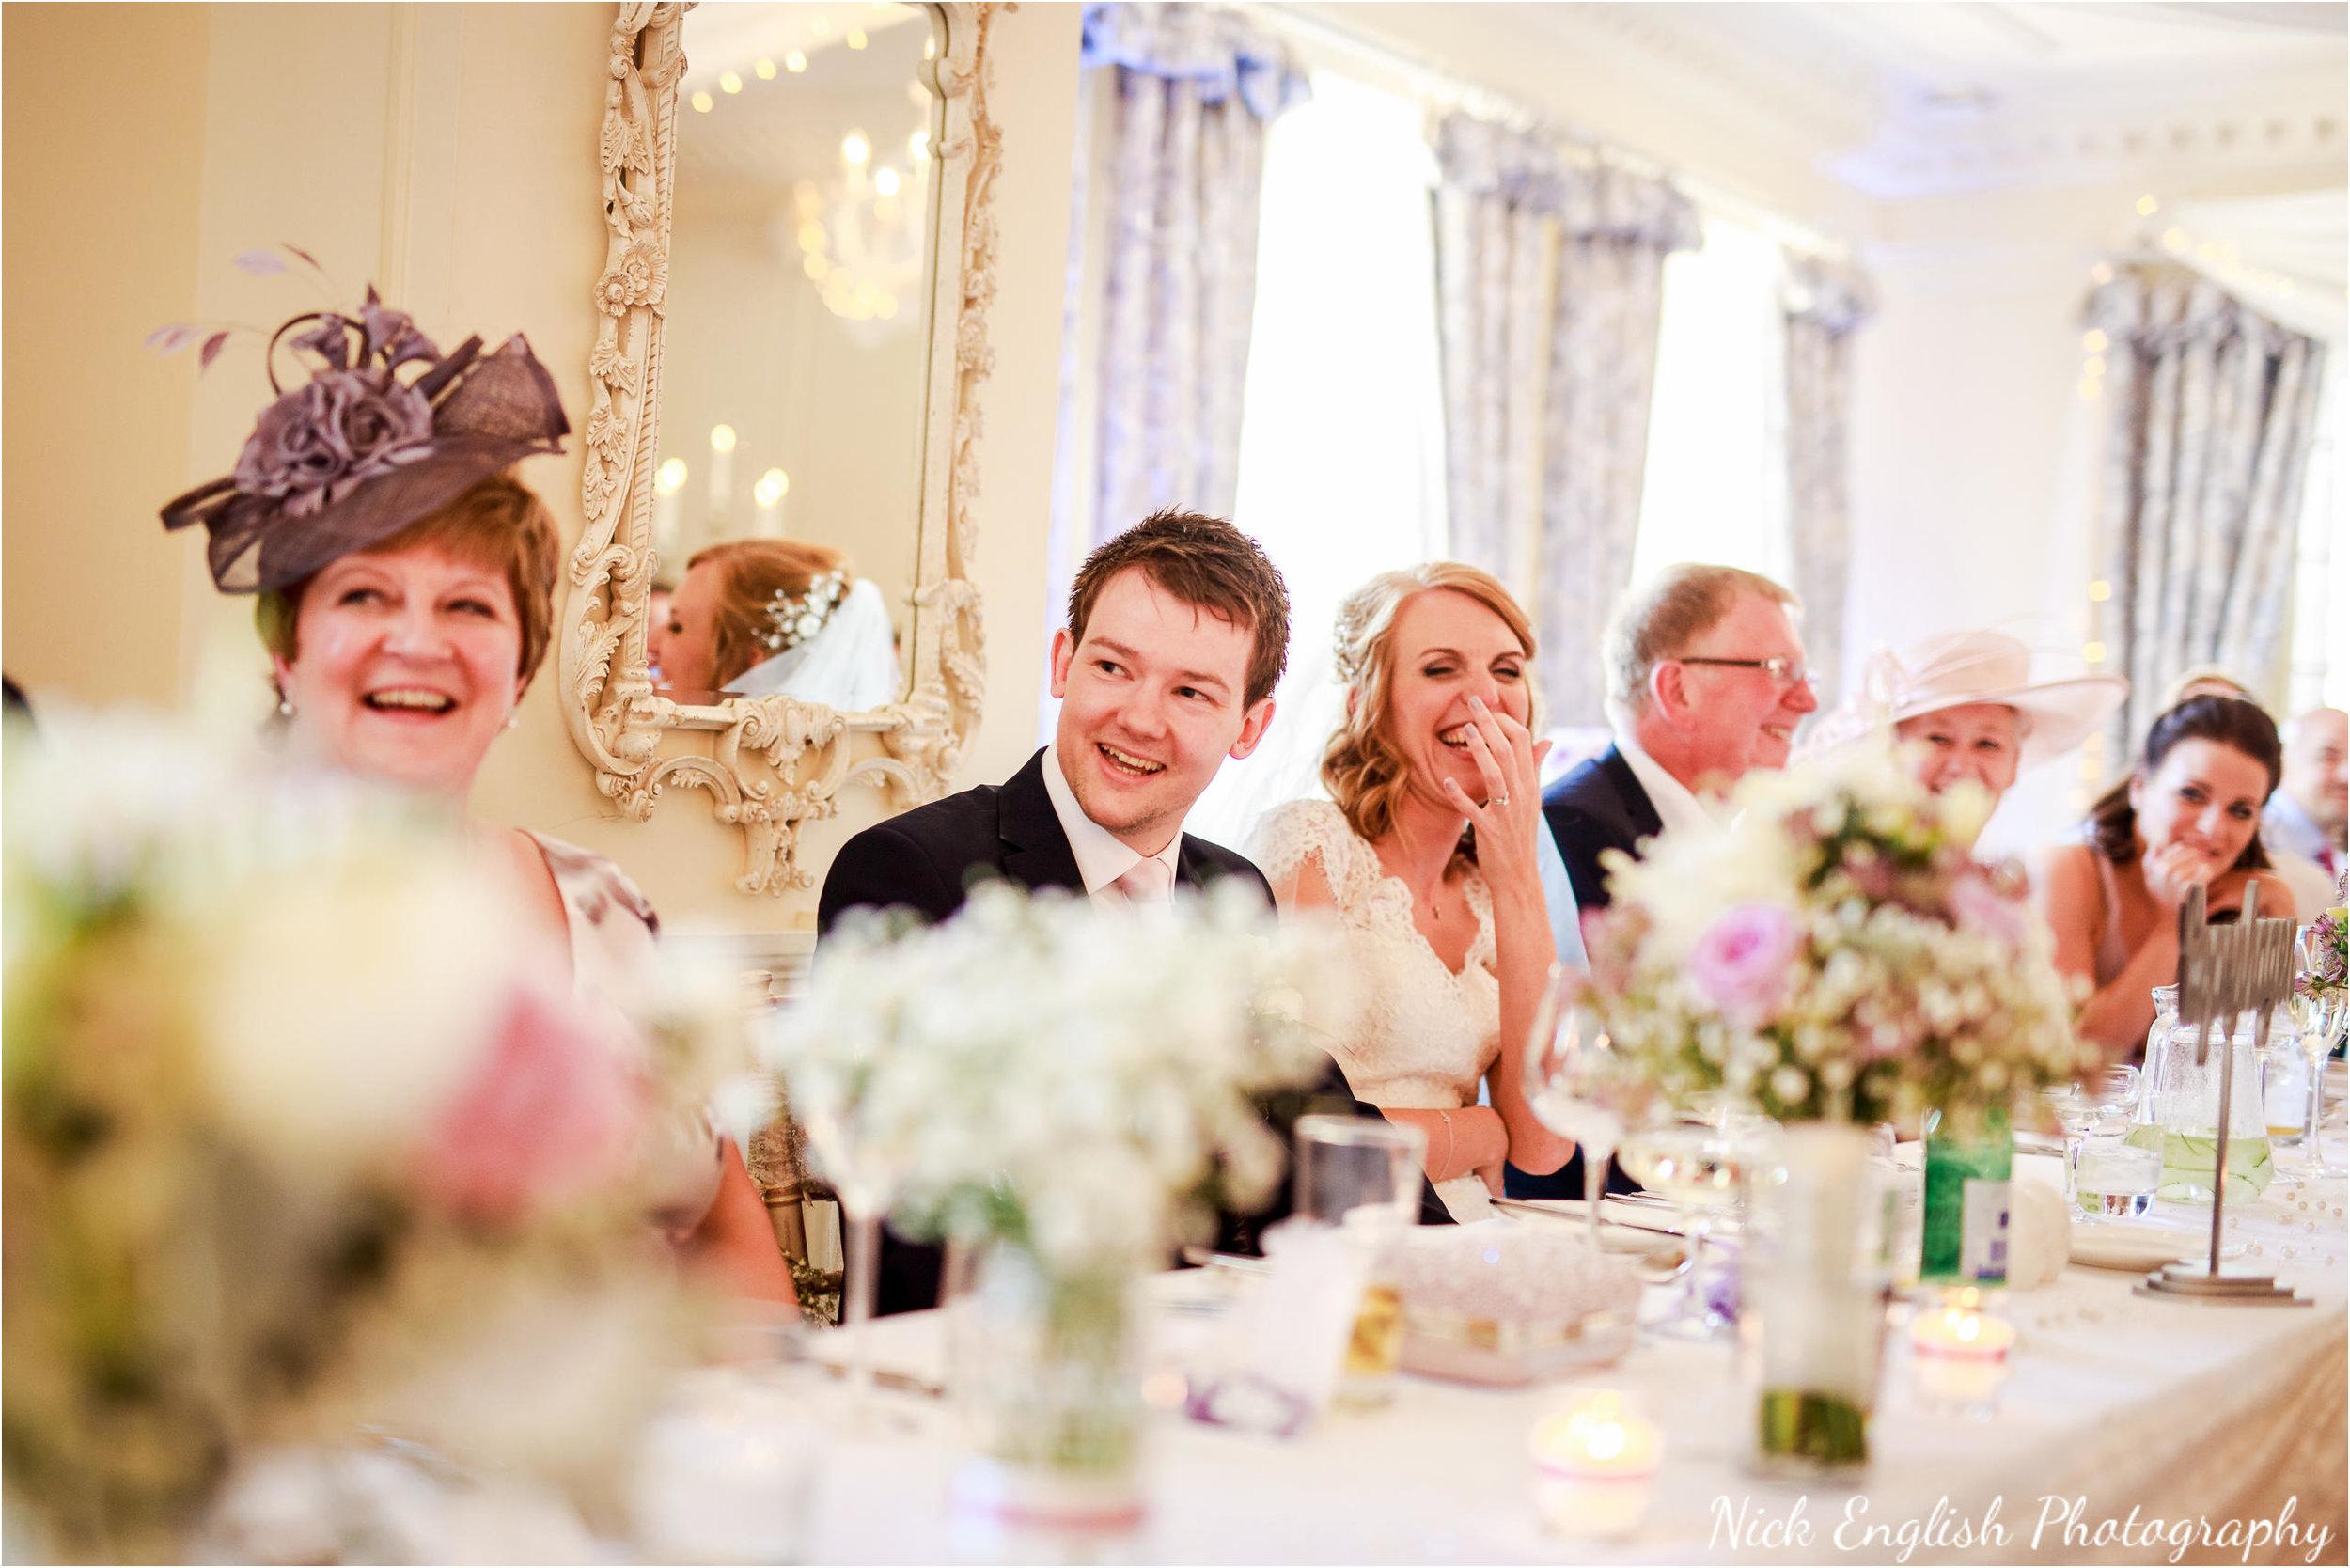 Alison James Wedding Photographs at Eaves Hall West Bradford 185jpg.jpeg